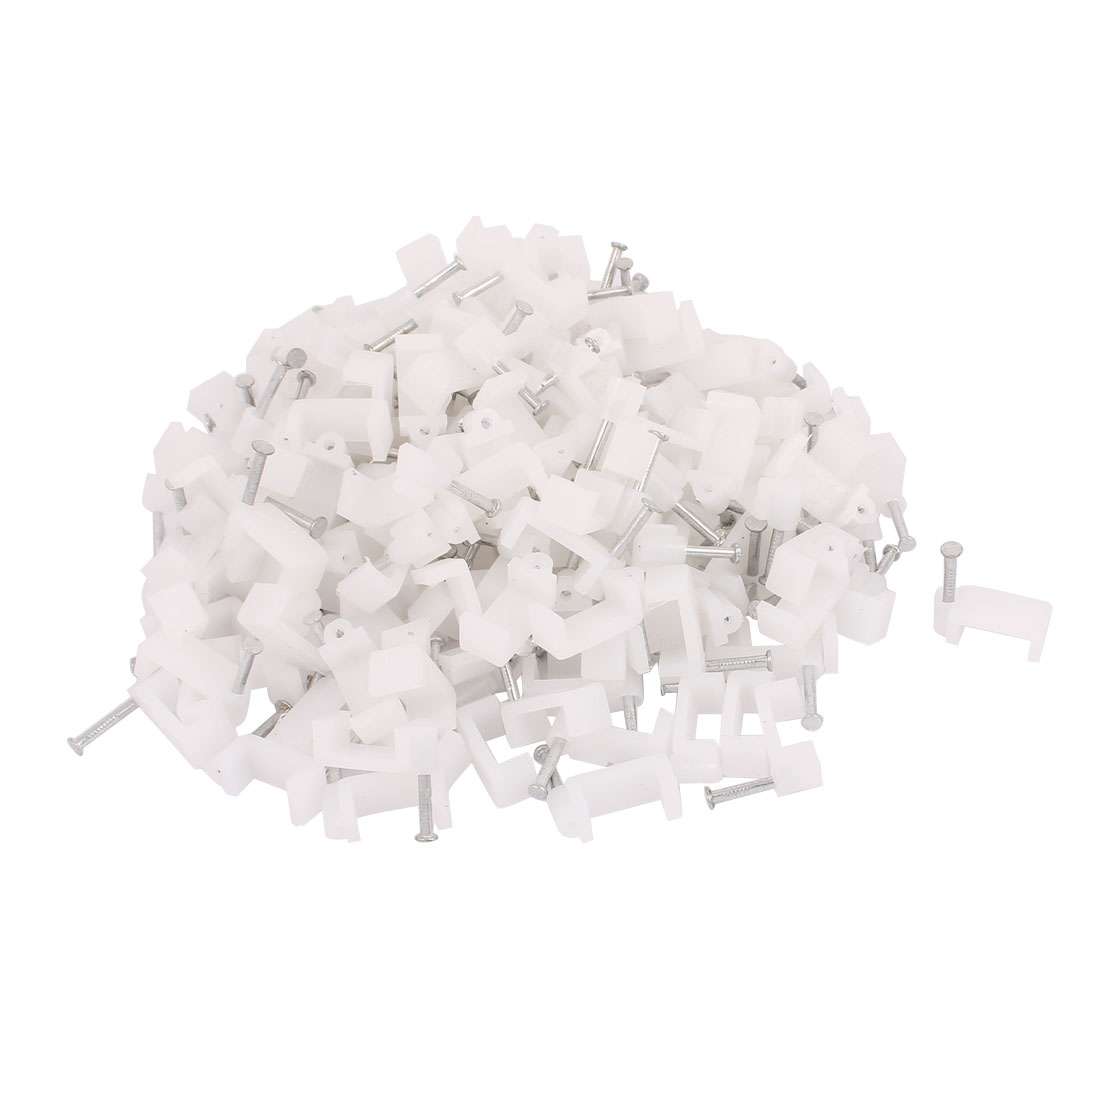 200 Pcs 12mm Width Flat Nail Coax Fixing Cable Clips Coaxial Taks Wire White